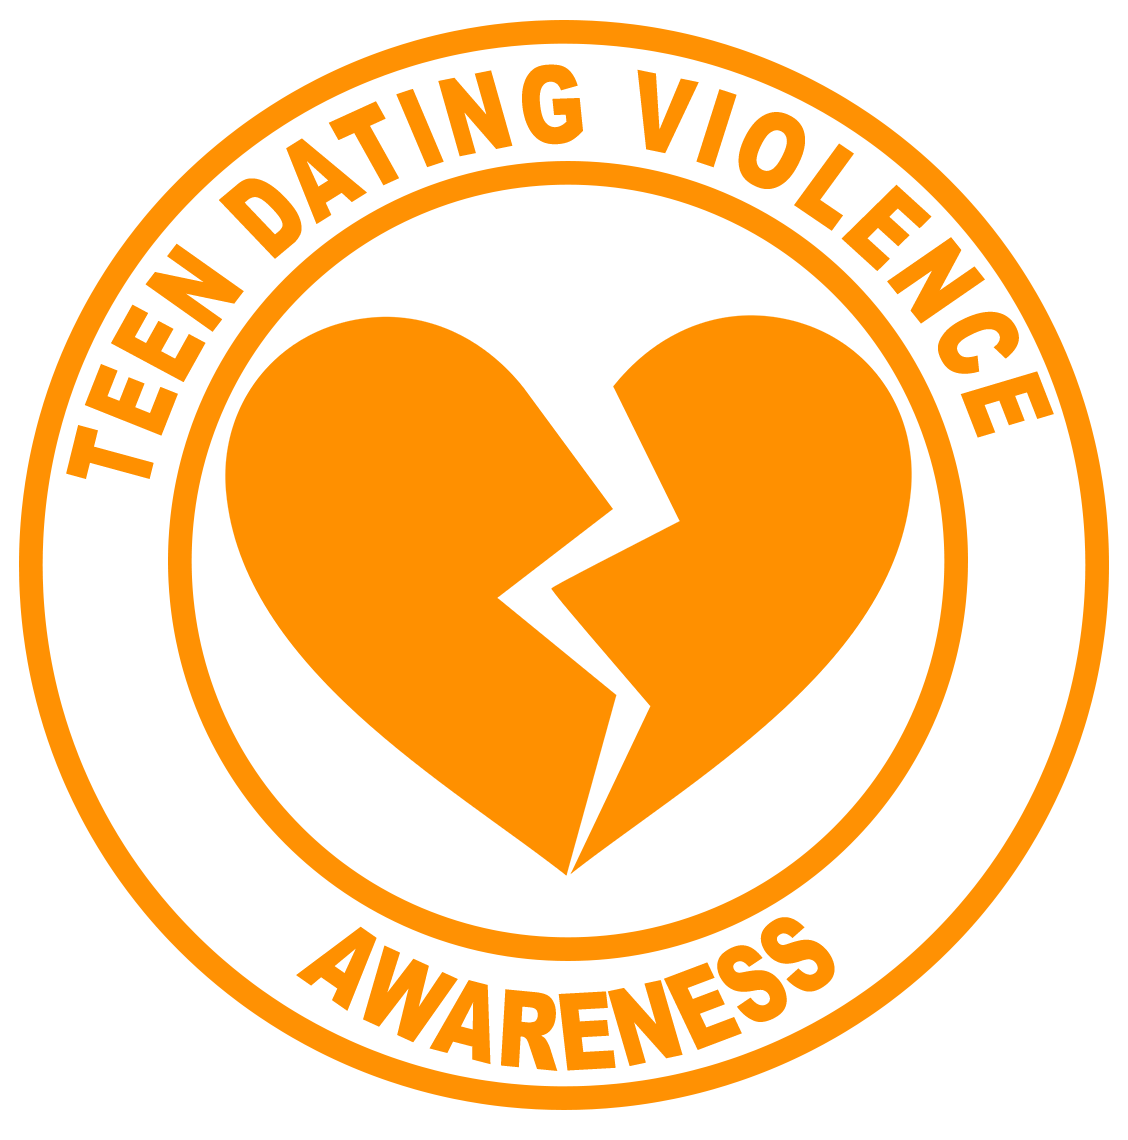 date rape and dating violence Introduction one significant form of violence against women especially in adolescent commonly found in intimate or dating relationships is date rape.